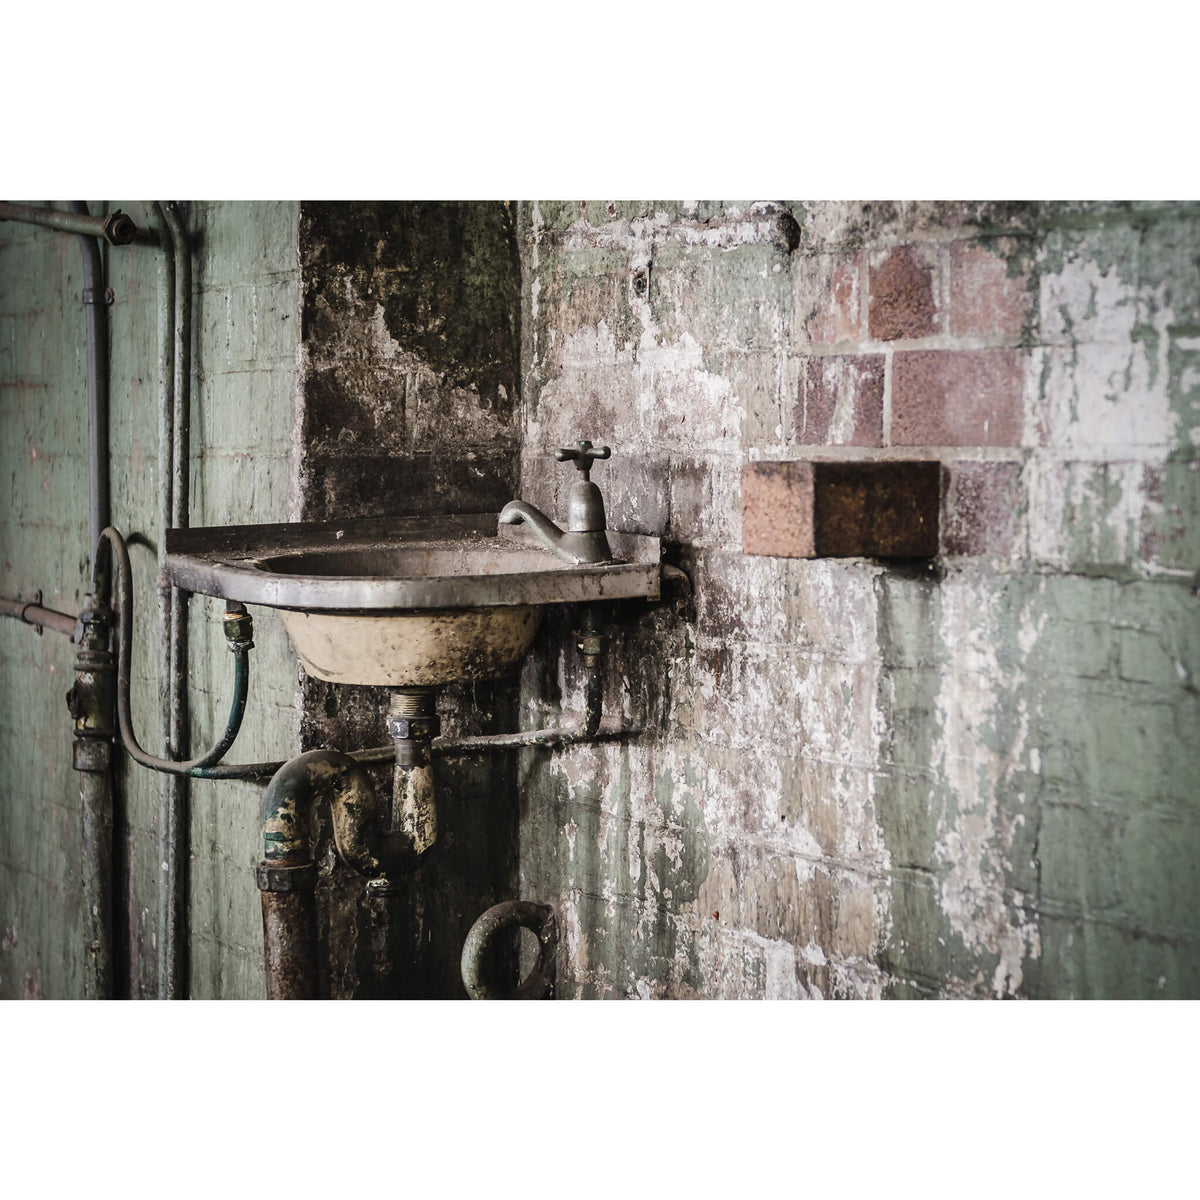 Hand Basin | West Ryde Pumping Station Fine Art Print - Lost Collective Shop